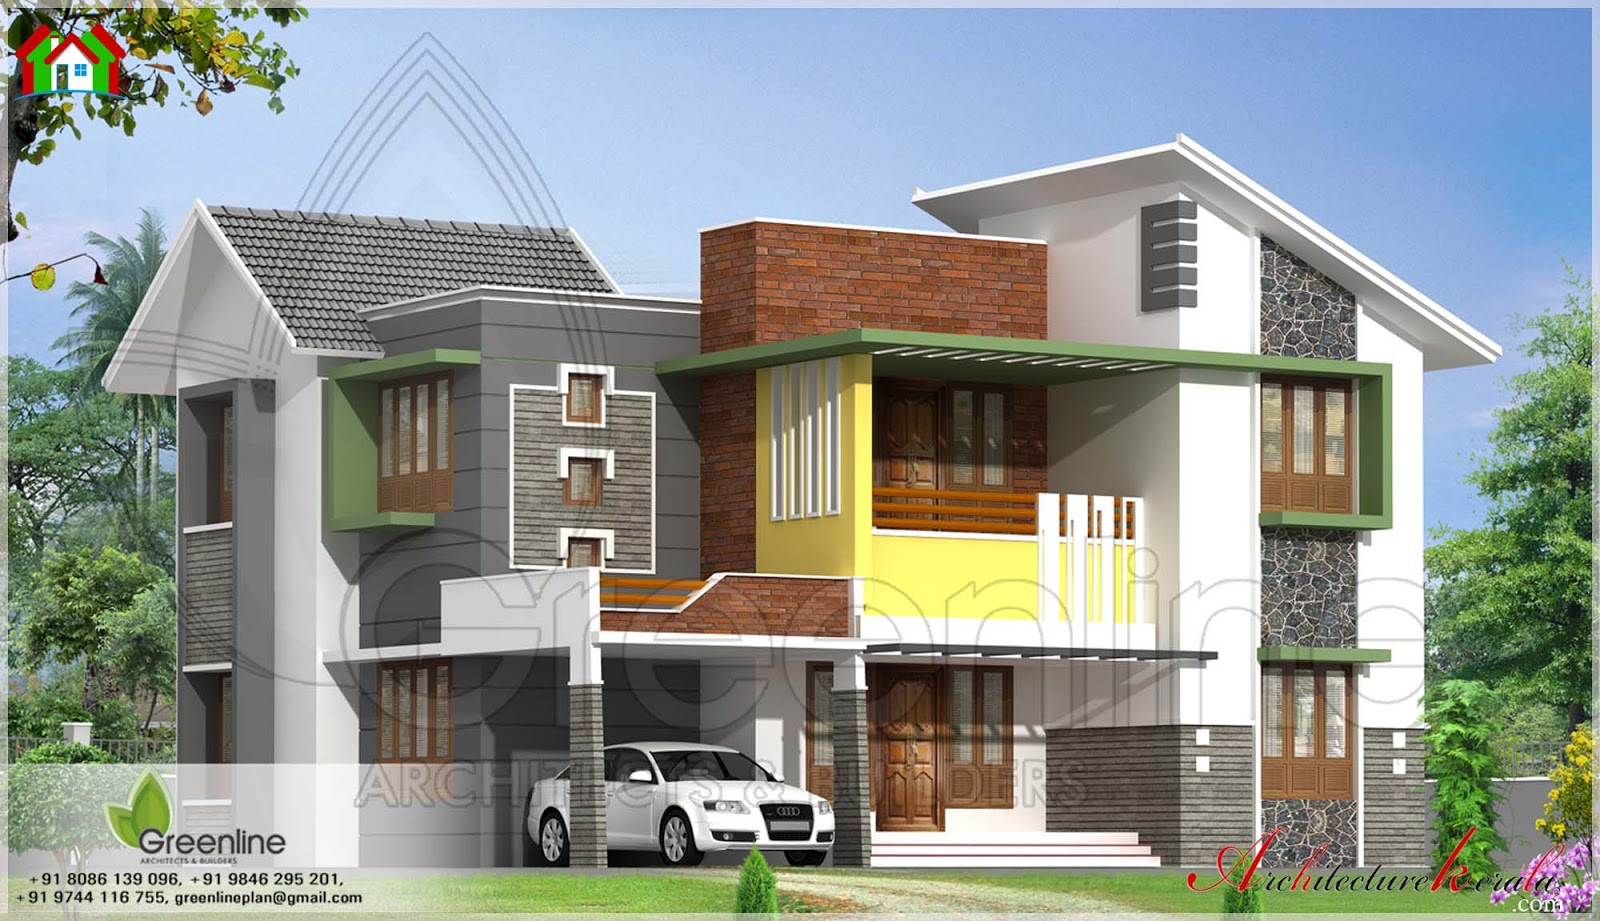 Modern style house elevation architecture kerala for Kerala style home designs and elevations